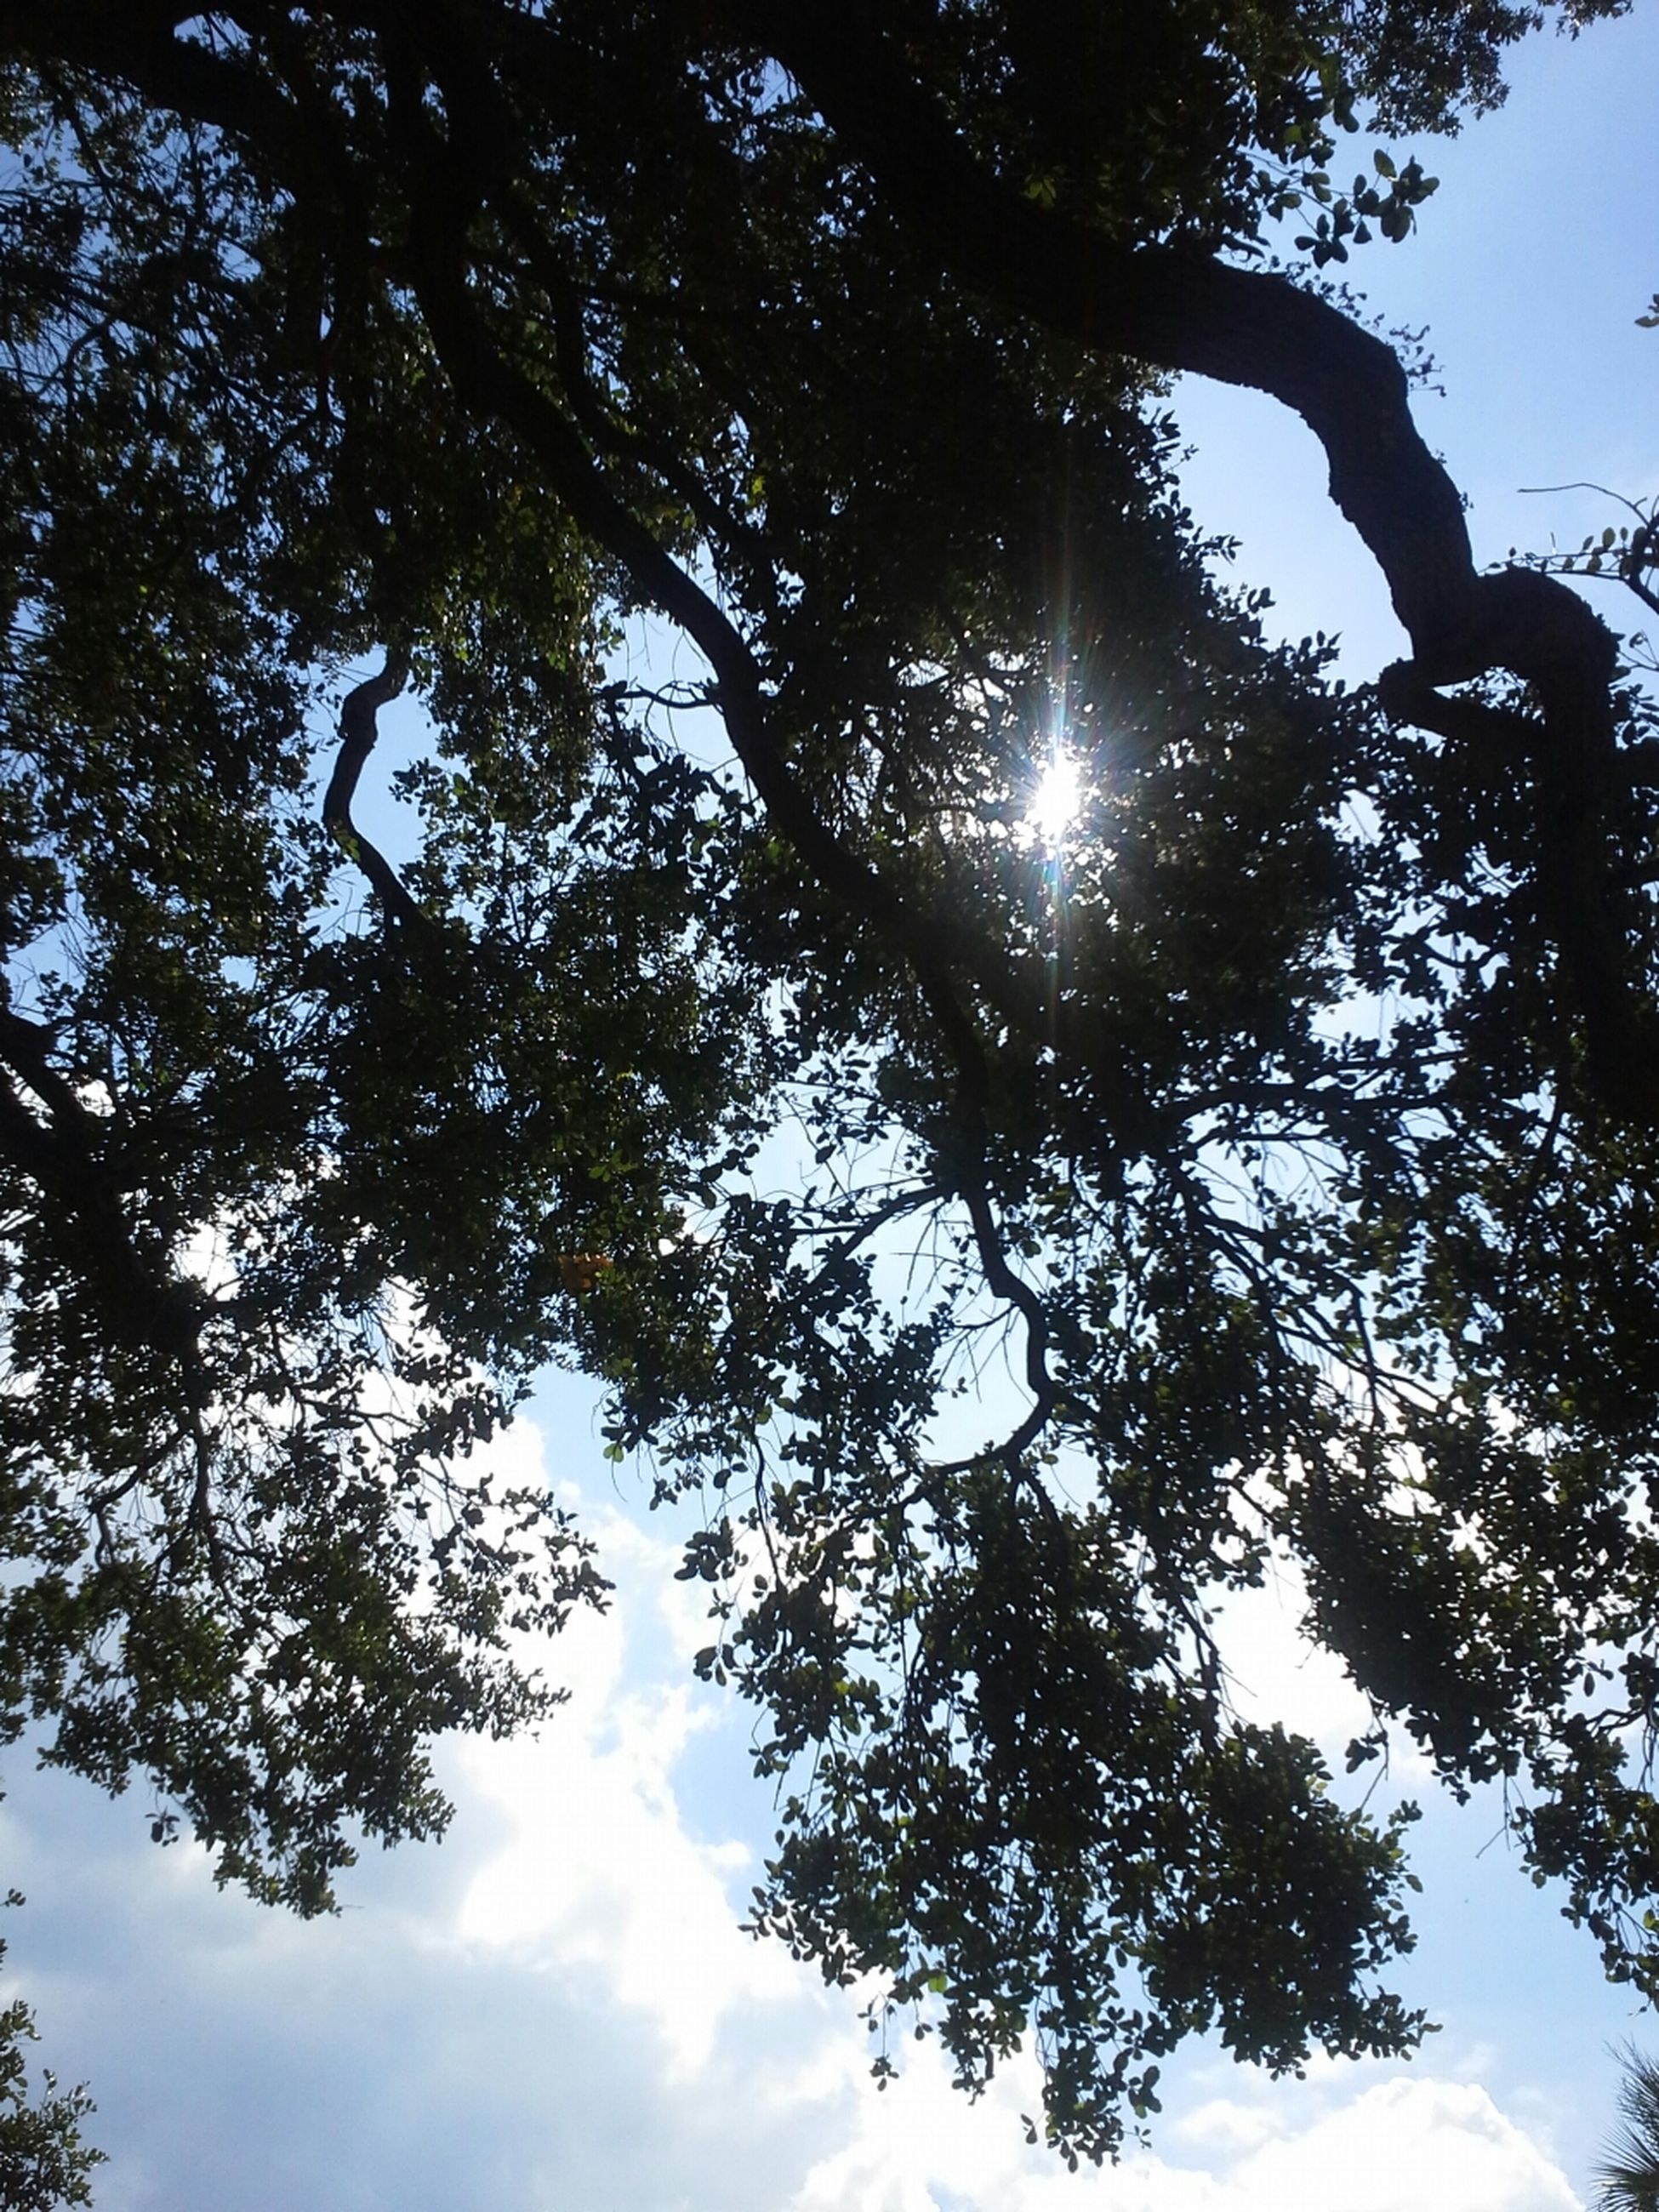 low angle view, tree, sun, sky, branch, growth, nature, tranquility, beauty in nature, sunlight, sunbeam, lens flare, silhouette, scenics, back lit, tranquil scene, day, outdoors, no people, cloud - sky